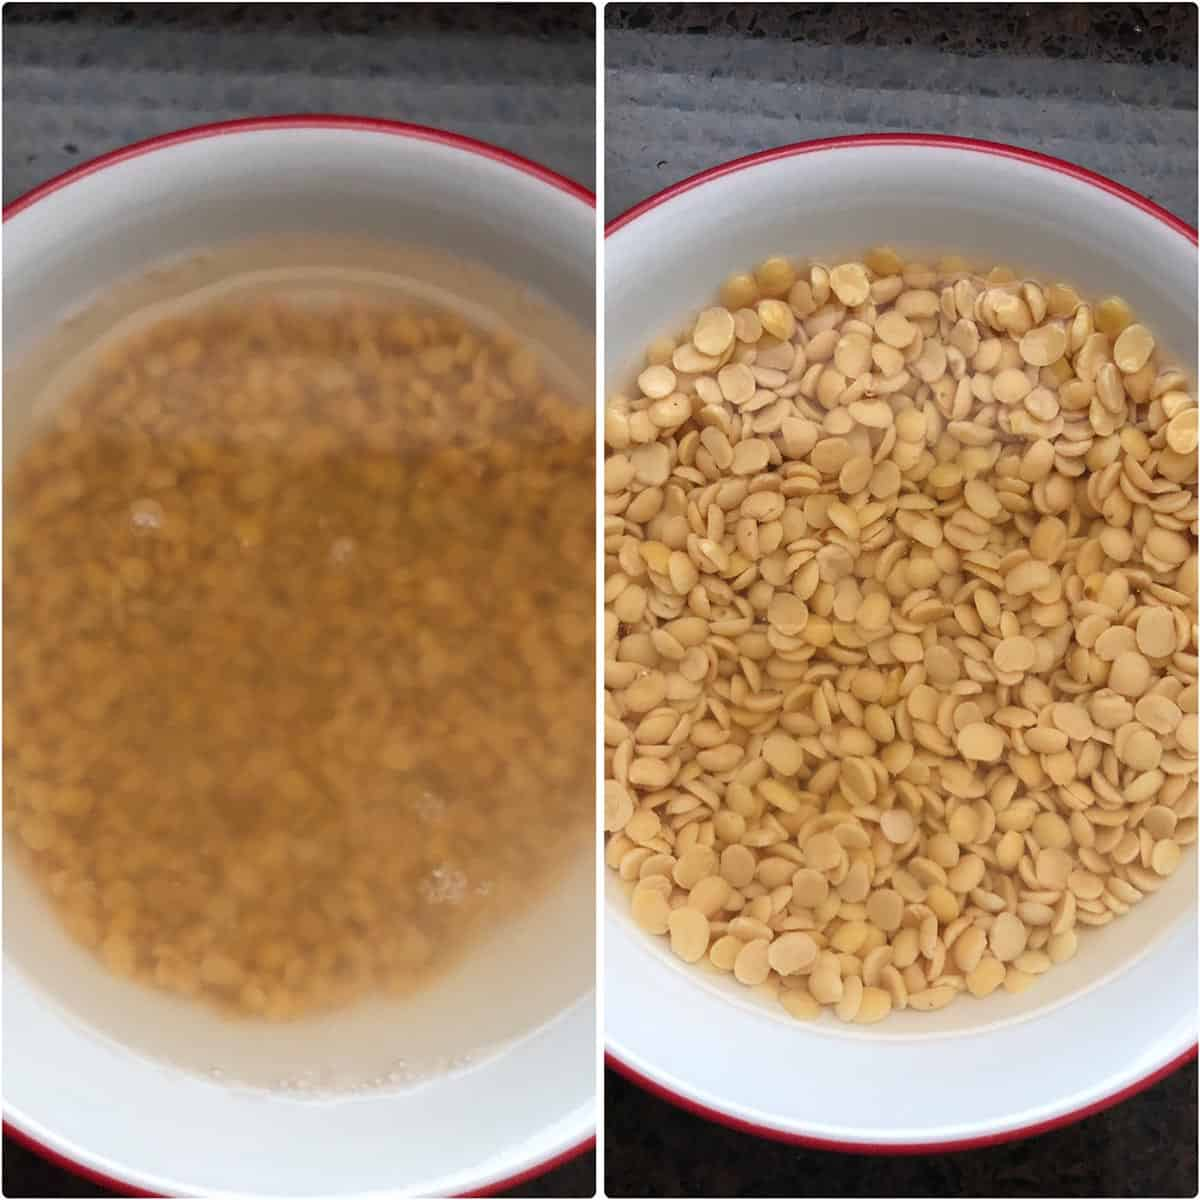 side by side photos of soaked lentils in white bowl